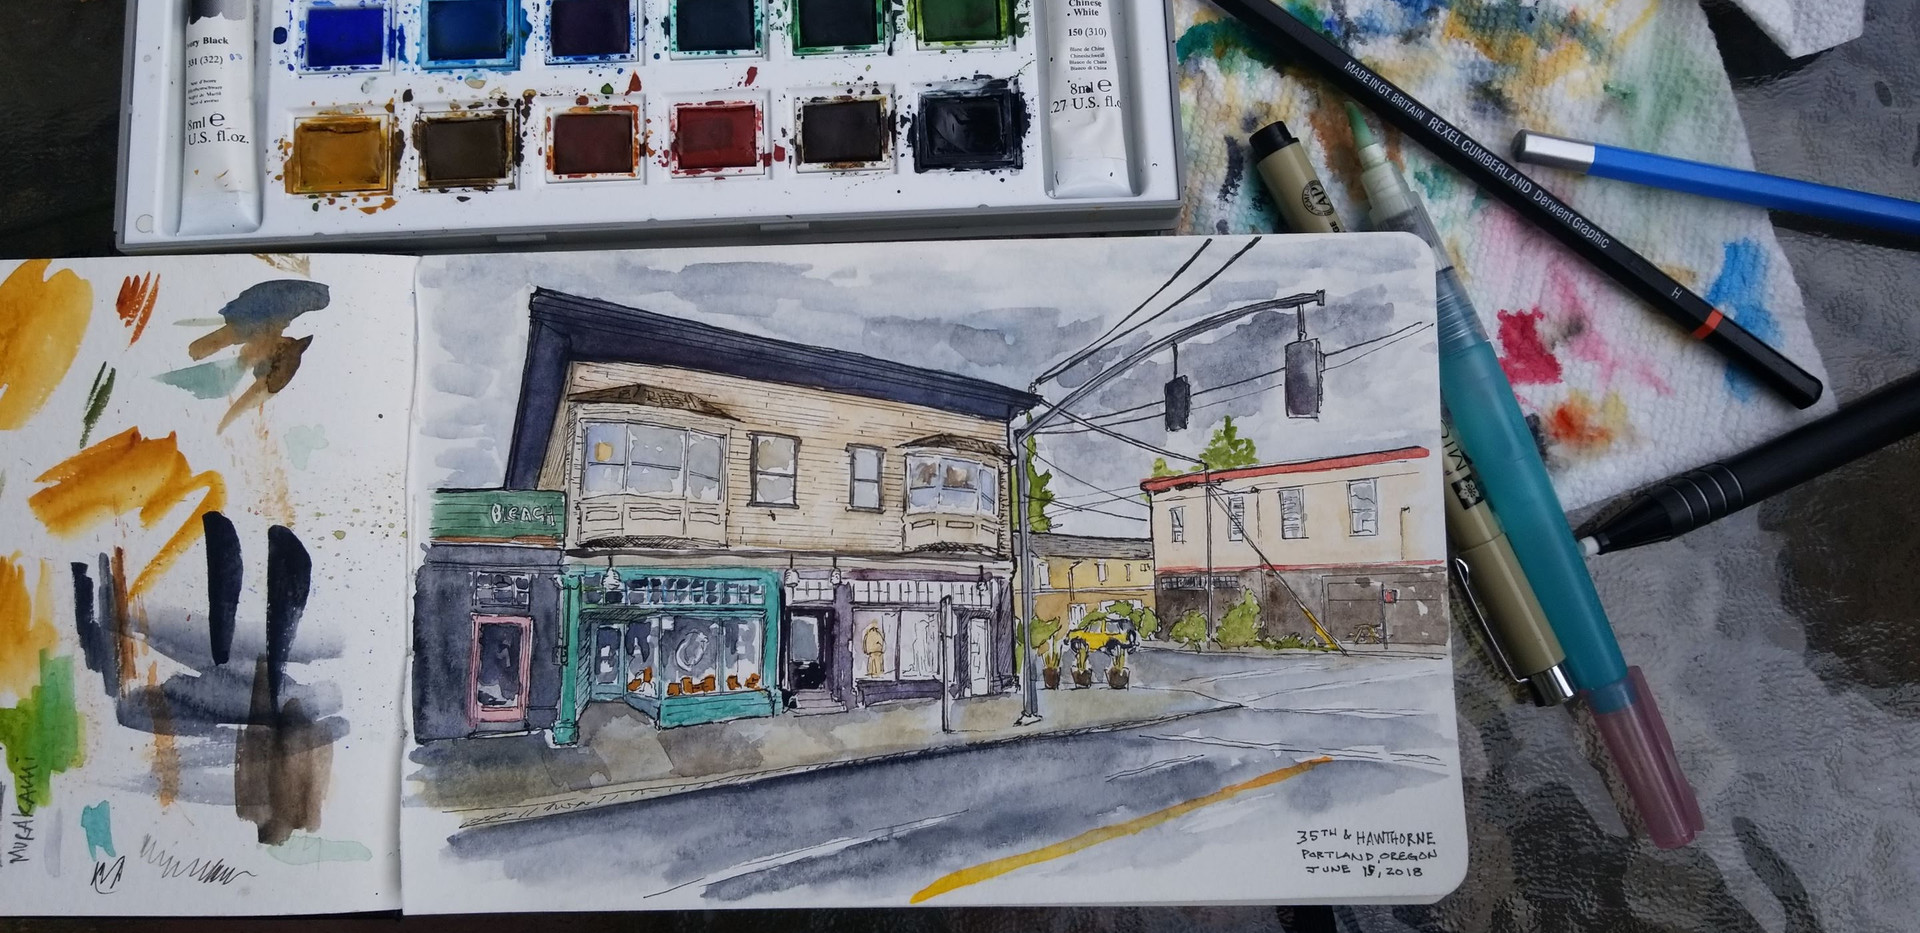 35th Place and Hawthorne